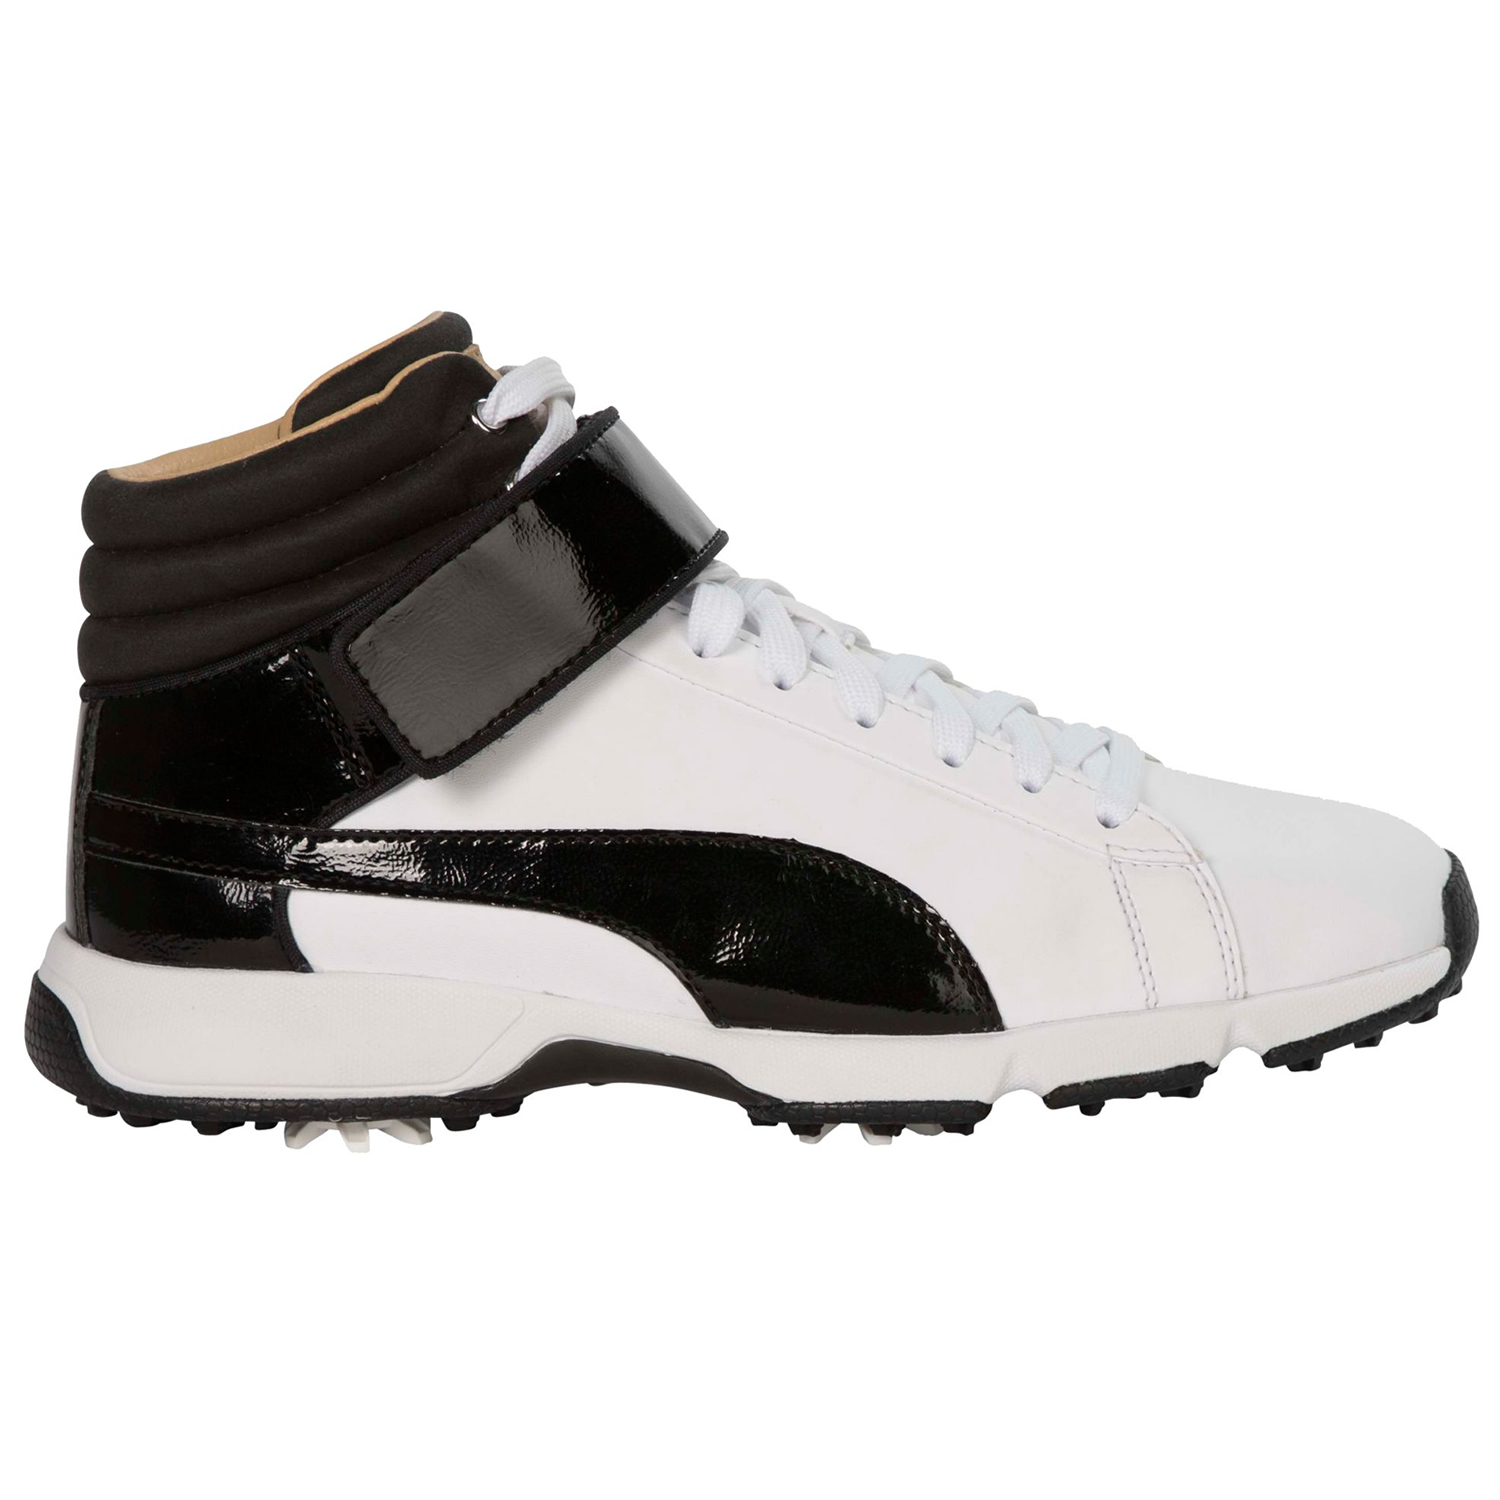 puma golf shoes. puma ignite high top rickie fowler junior golf shoes white/black | scottsdale